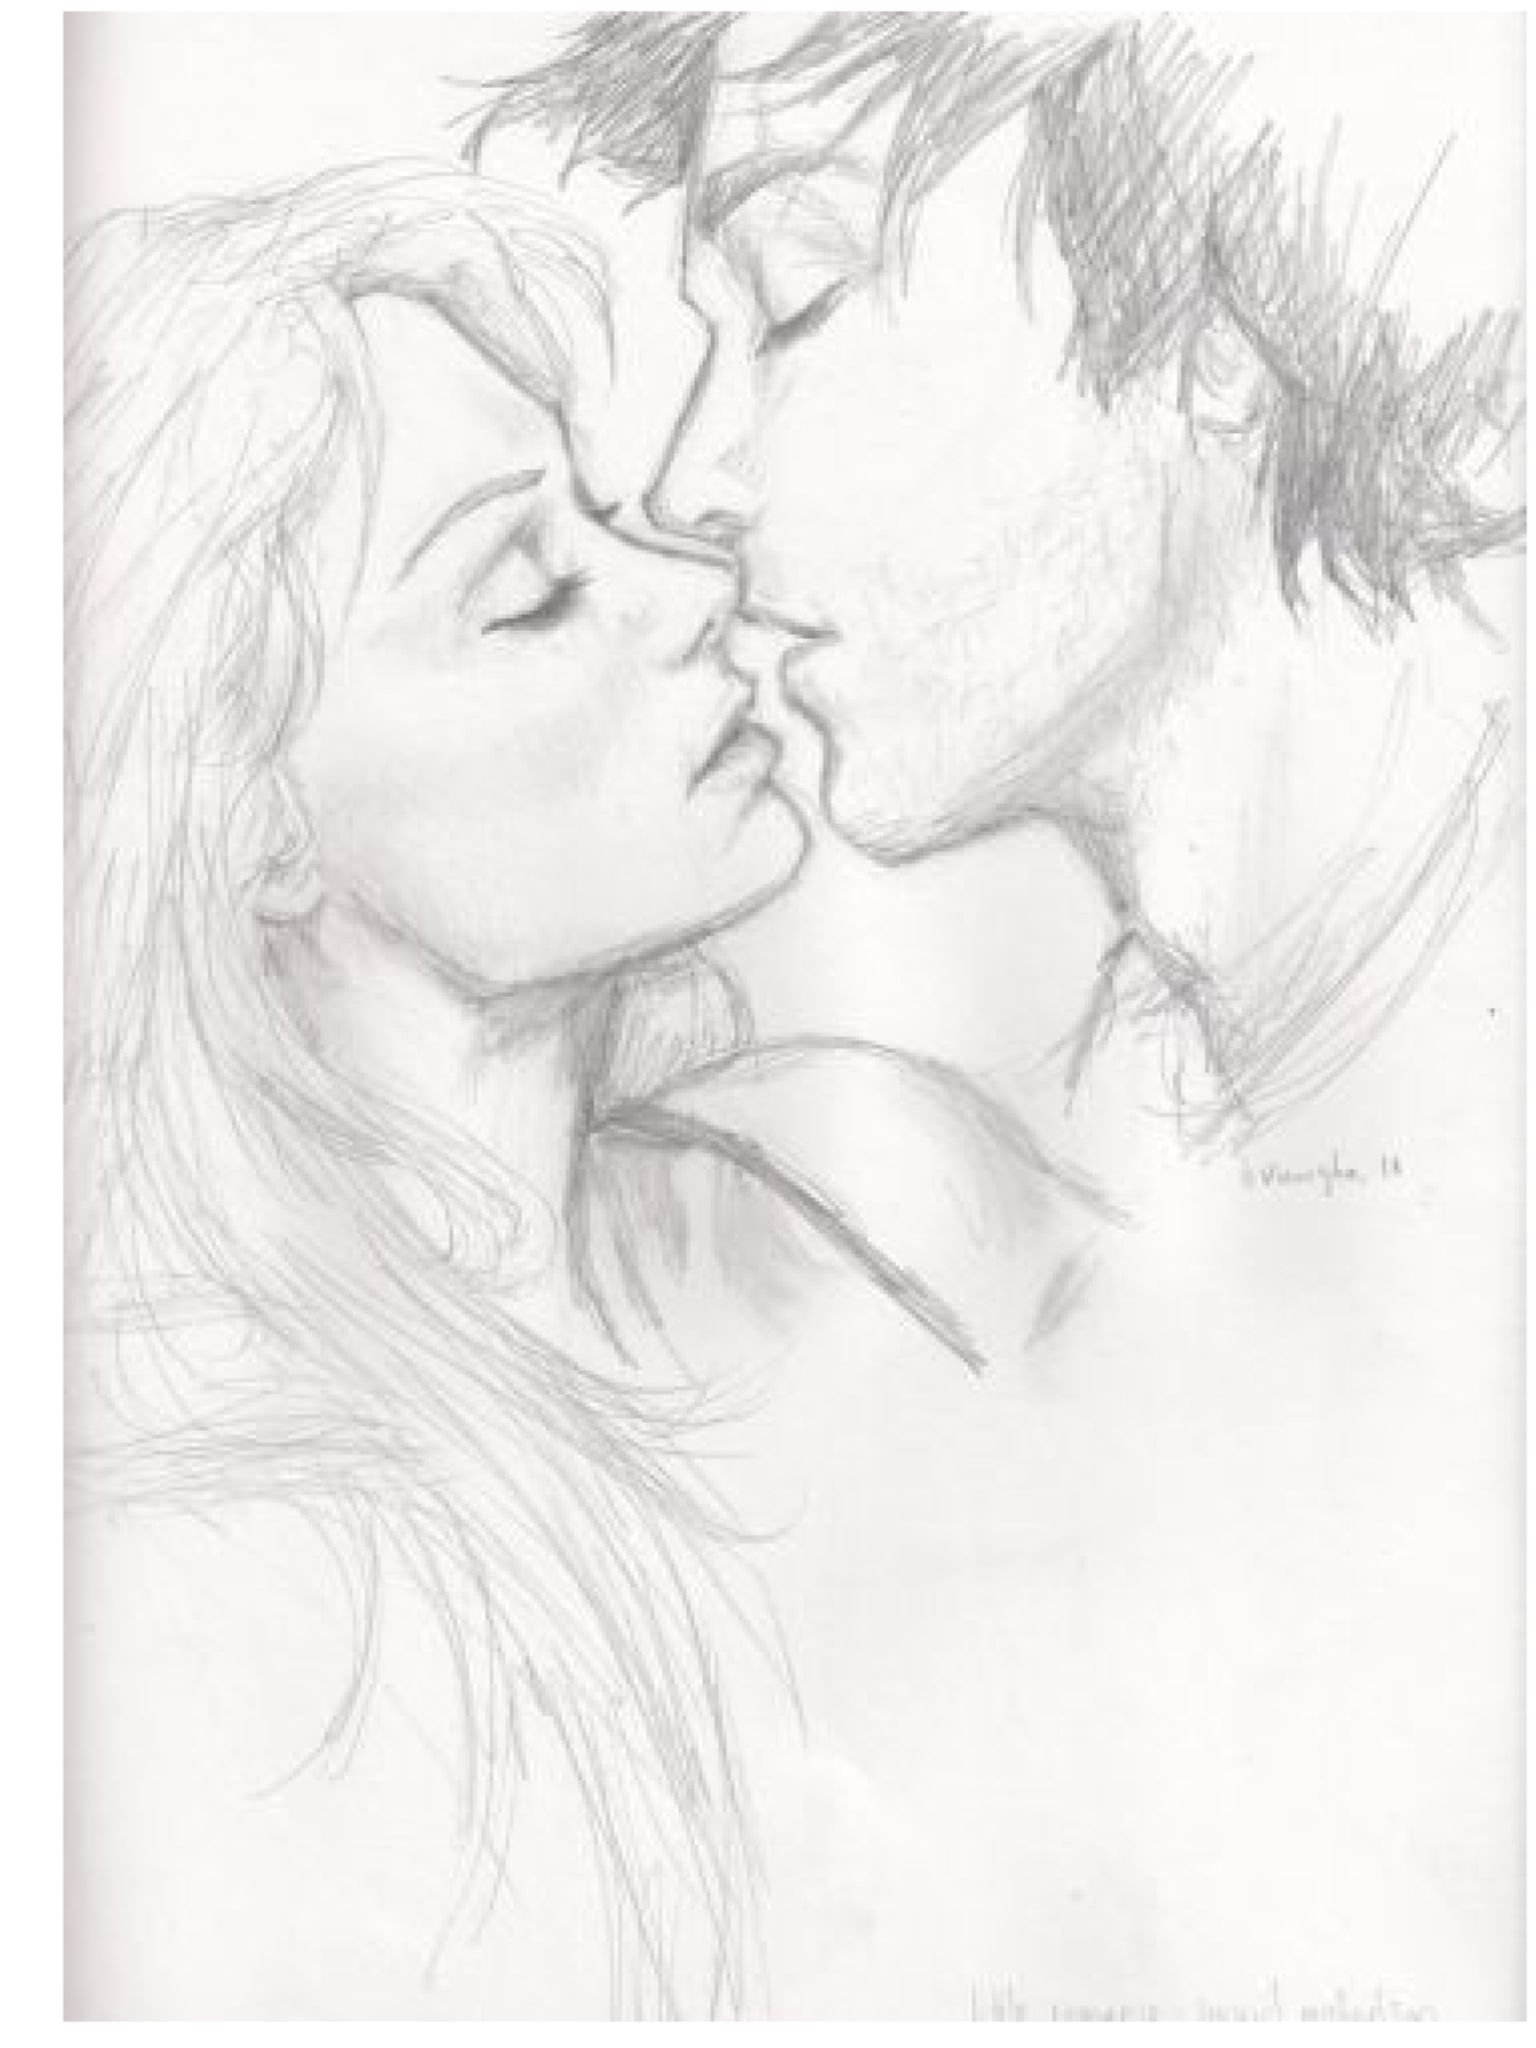 Sketches of love couples love drawings couple couple kiss drawing drawing people kissing